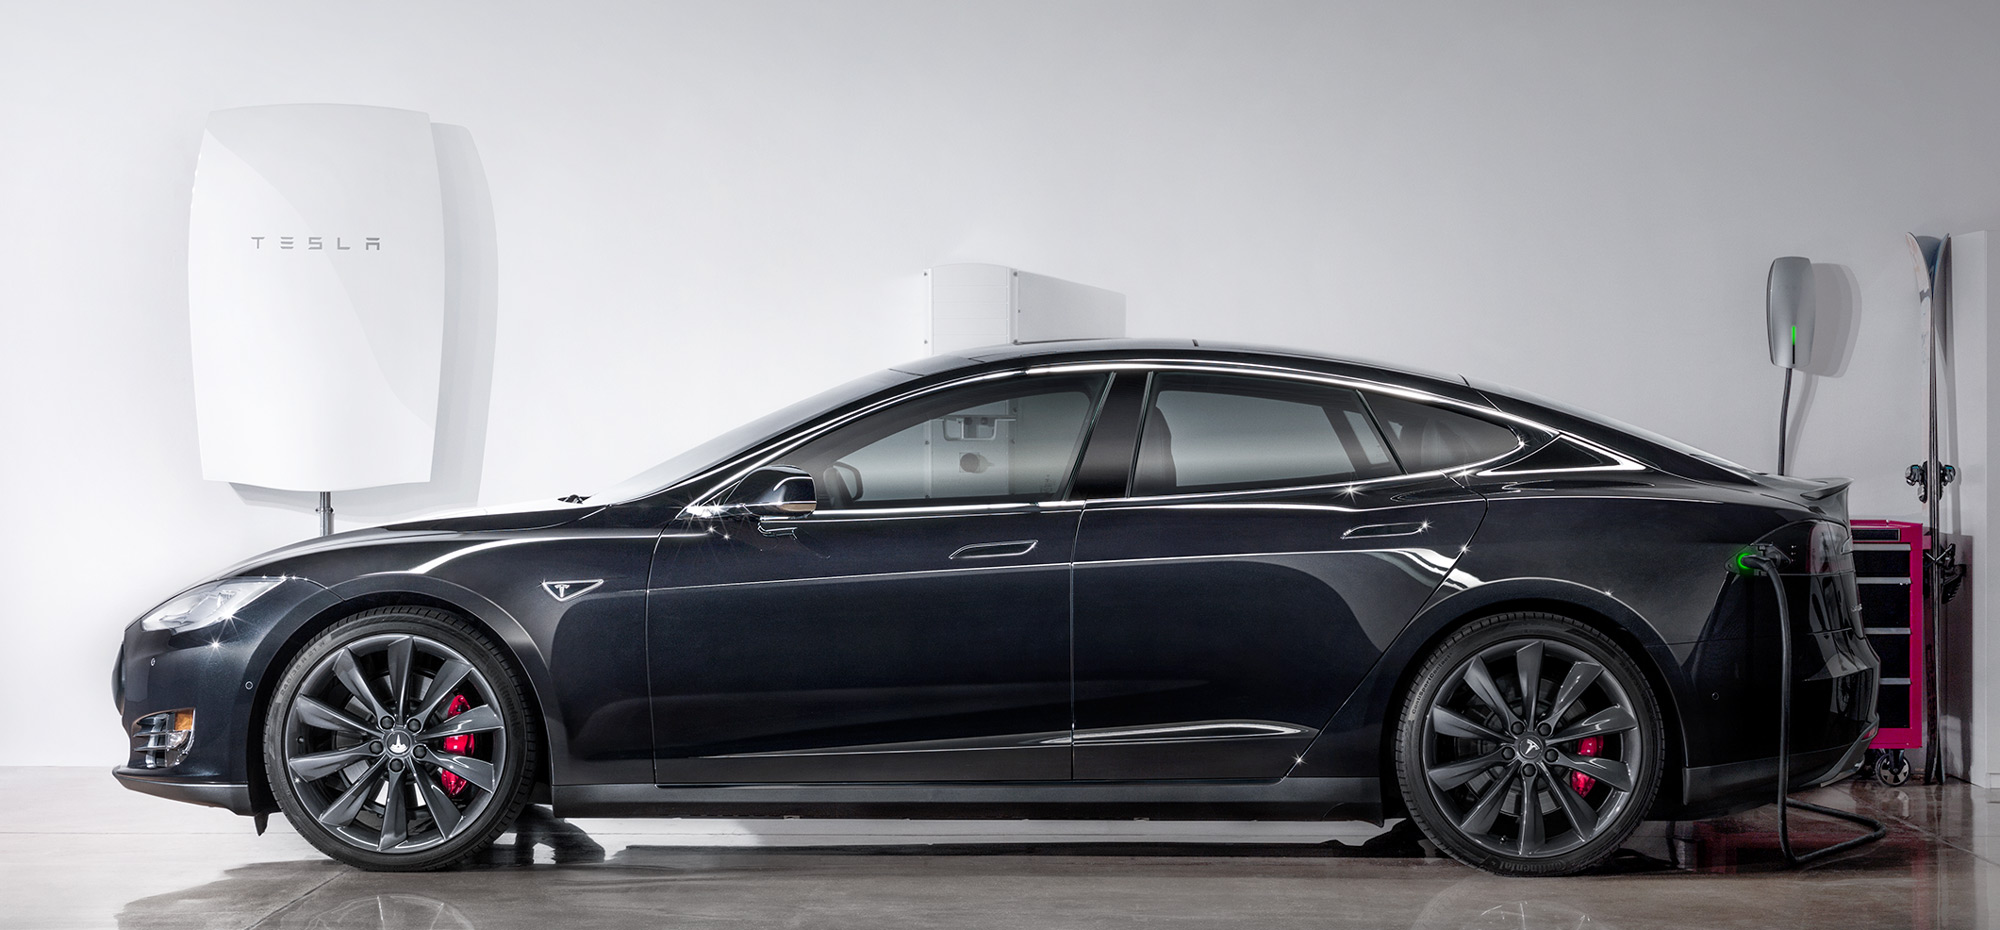 Tech Trends- After updating their policies, many analysts are wondering what effect it will have on Tesla.